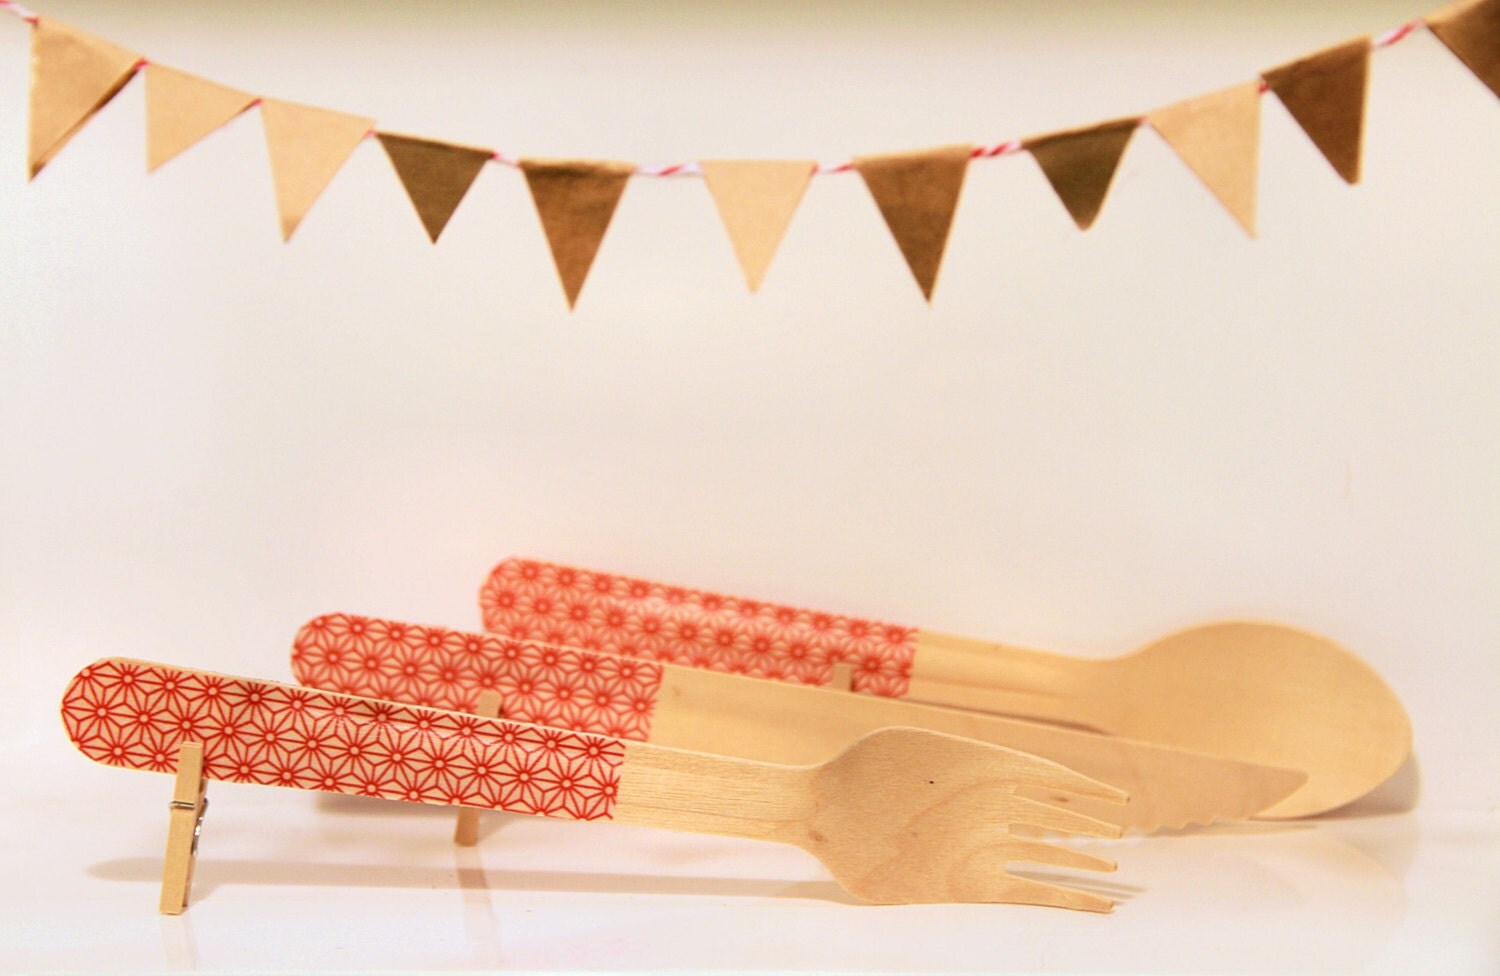 Clothed Cutlery in Red Starflakes - Disposable Washi-Patterned Wooden Forks, Spoons or Knives (A Dozen) - Gloriousmess